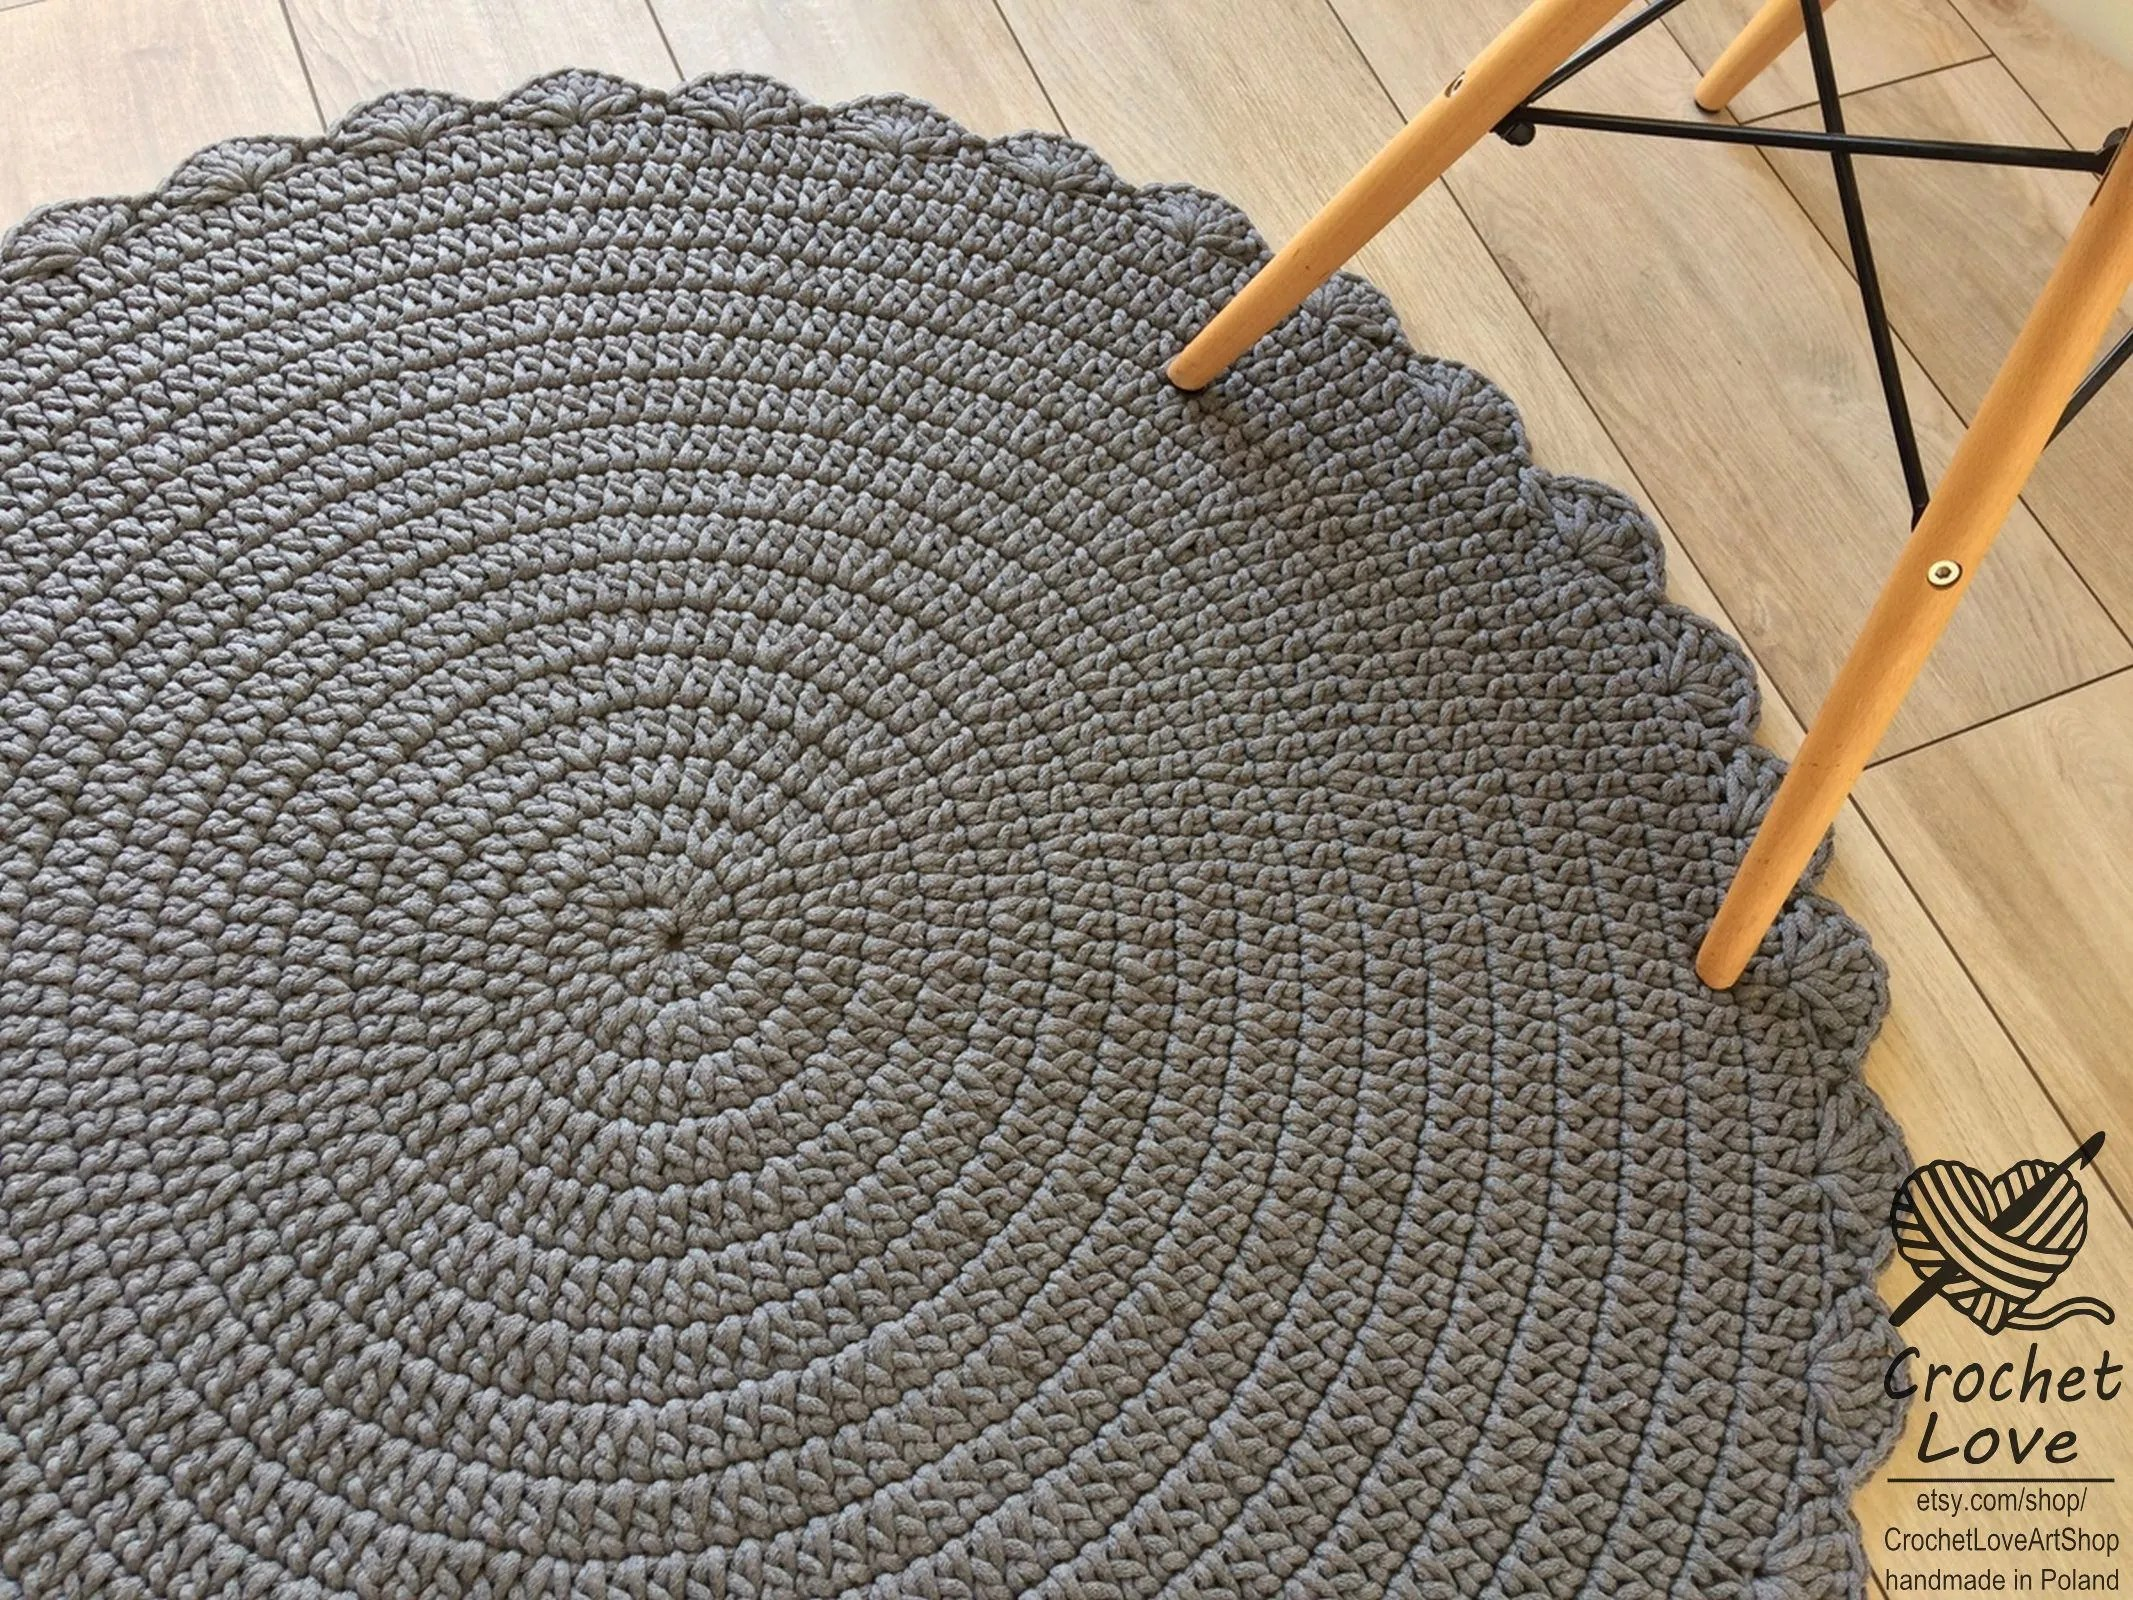 Runde Teppiche Modern Many Colors Many Sizes Modern Crochet Rug Round Rug Teppiche Runde Teppich Children Rug Crochet Carpet Cotton Rug Taupe Crochet Rug